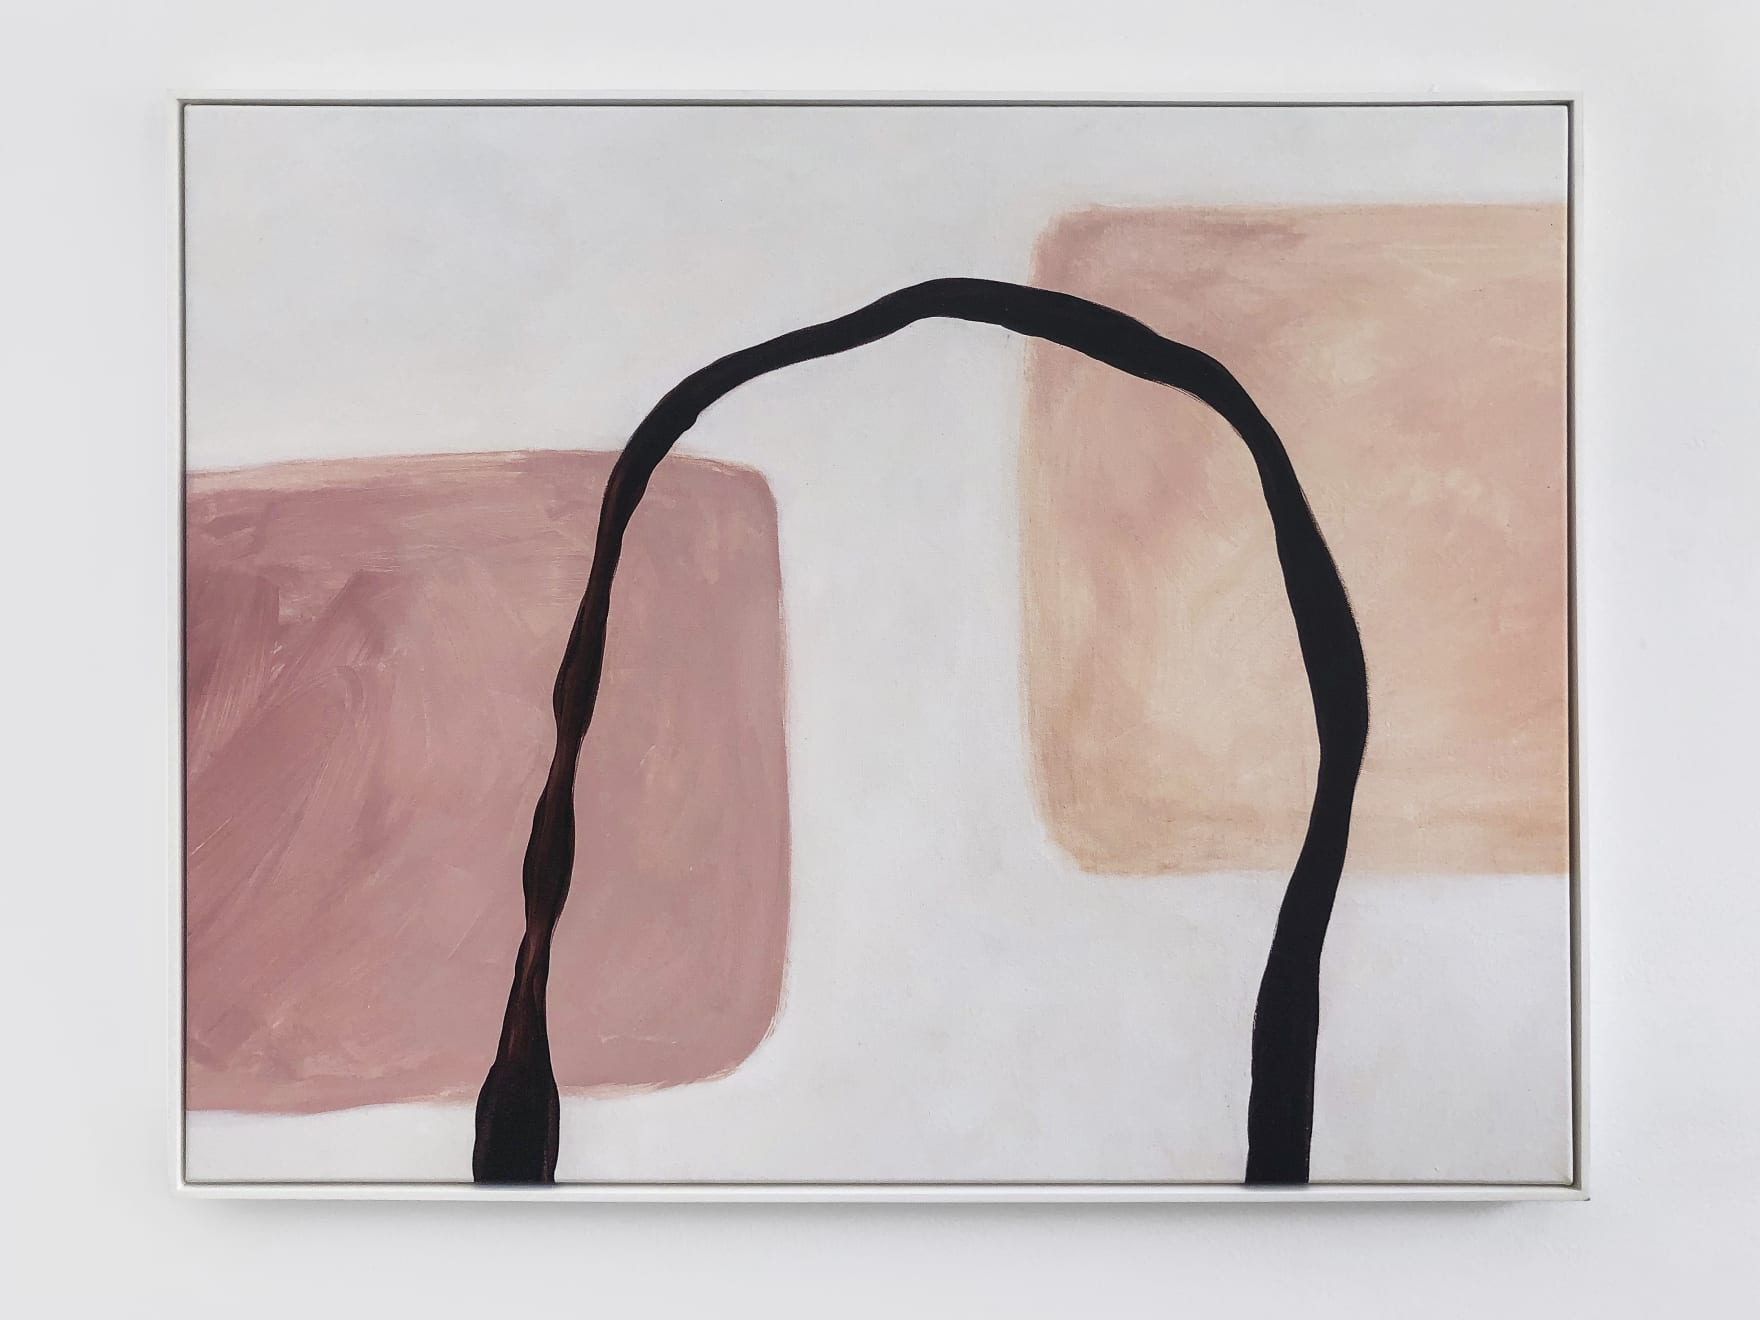 Caroline Popham, Give space to the air between, 2019